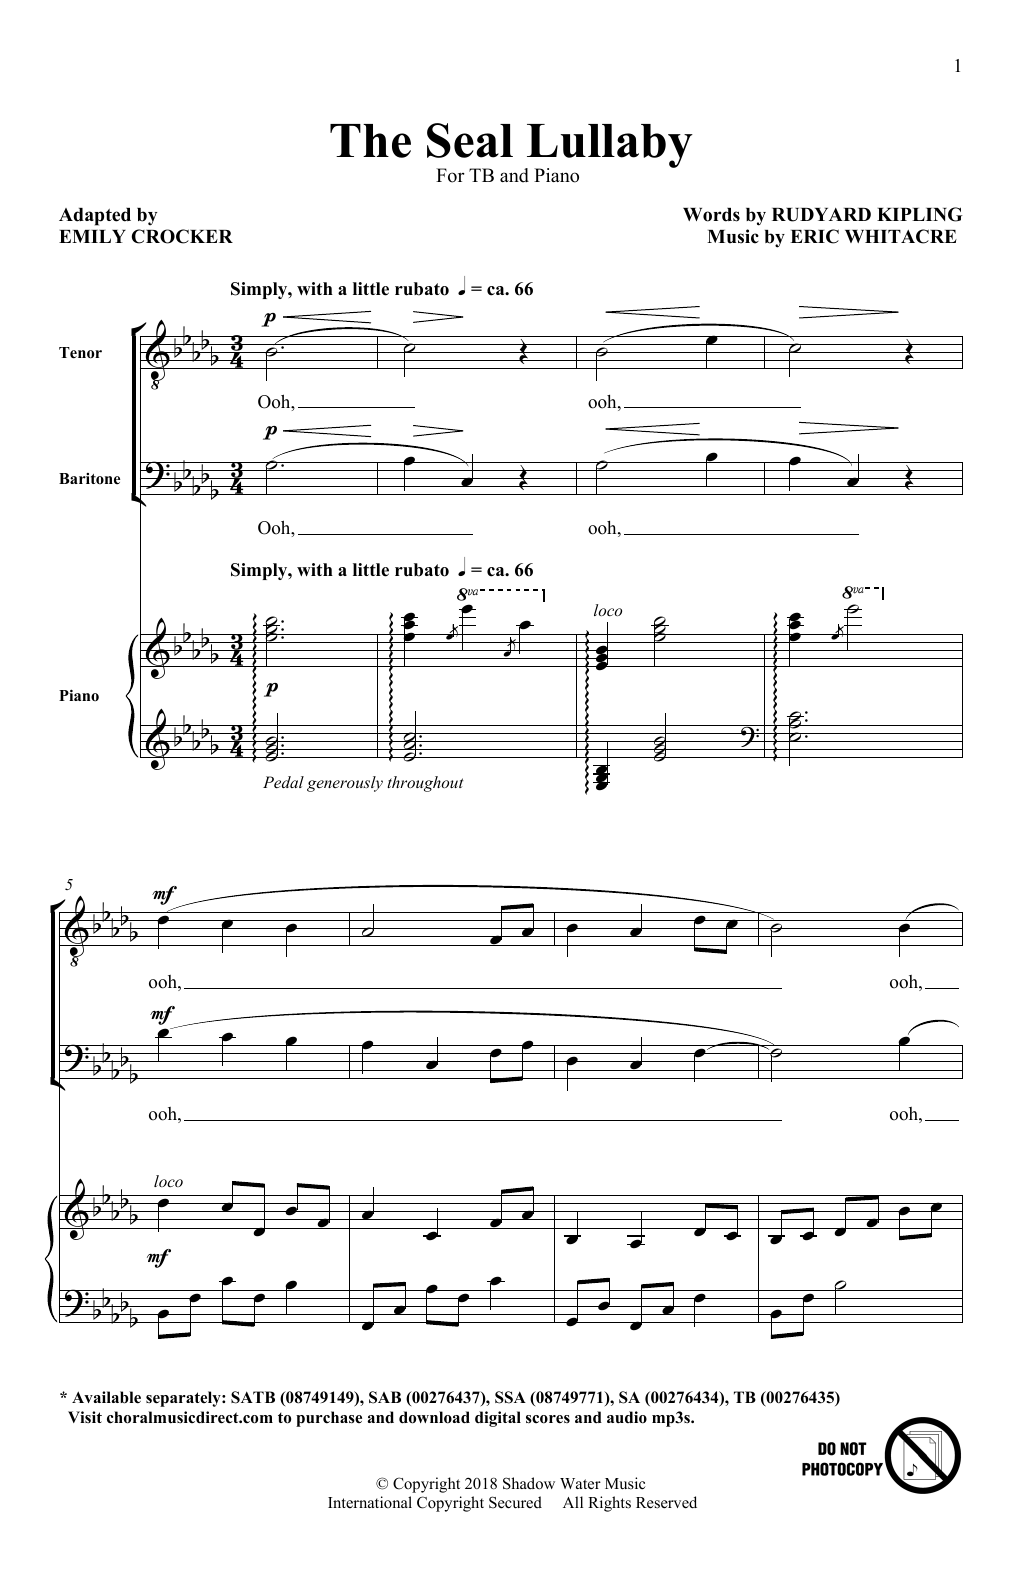 The Seal Lullaby Sheet Music